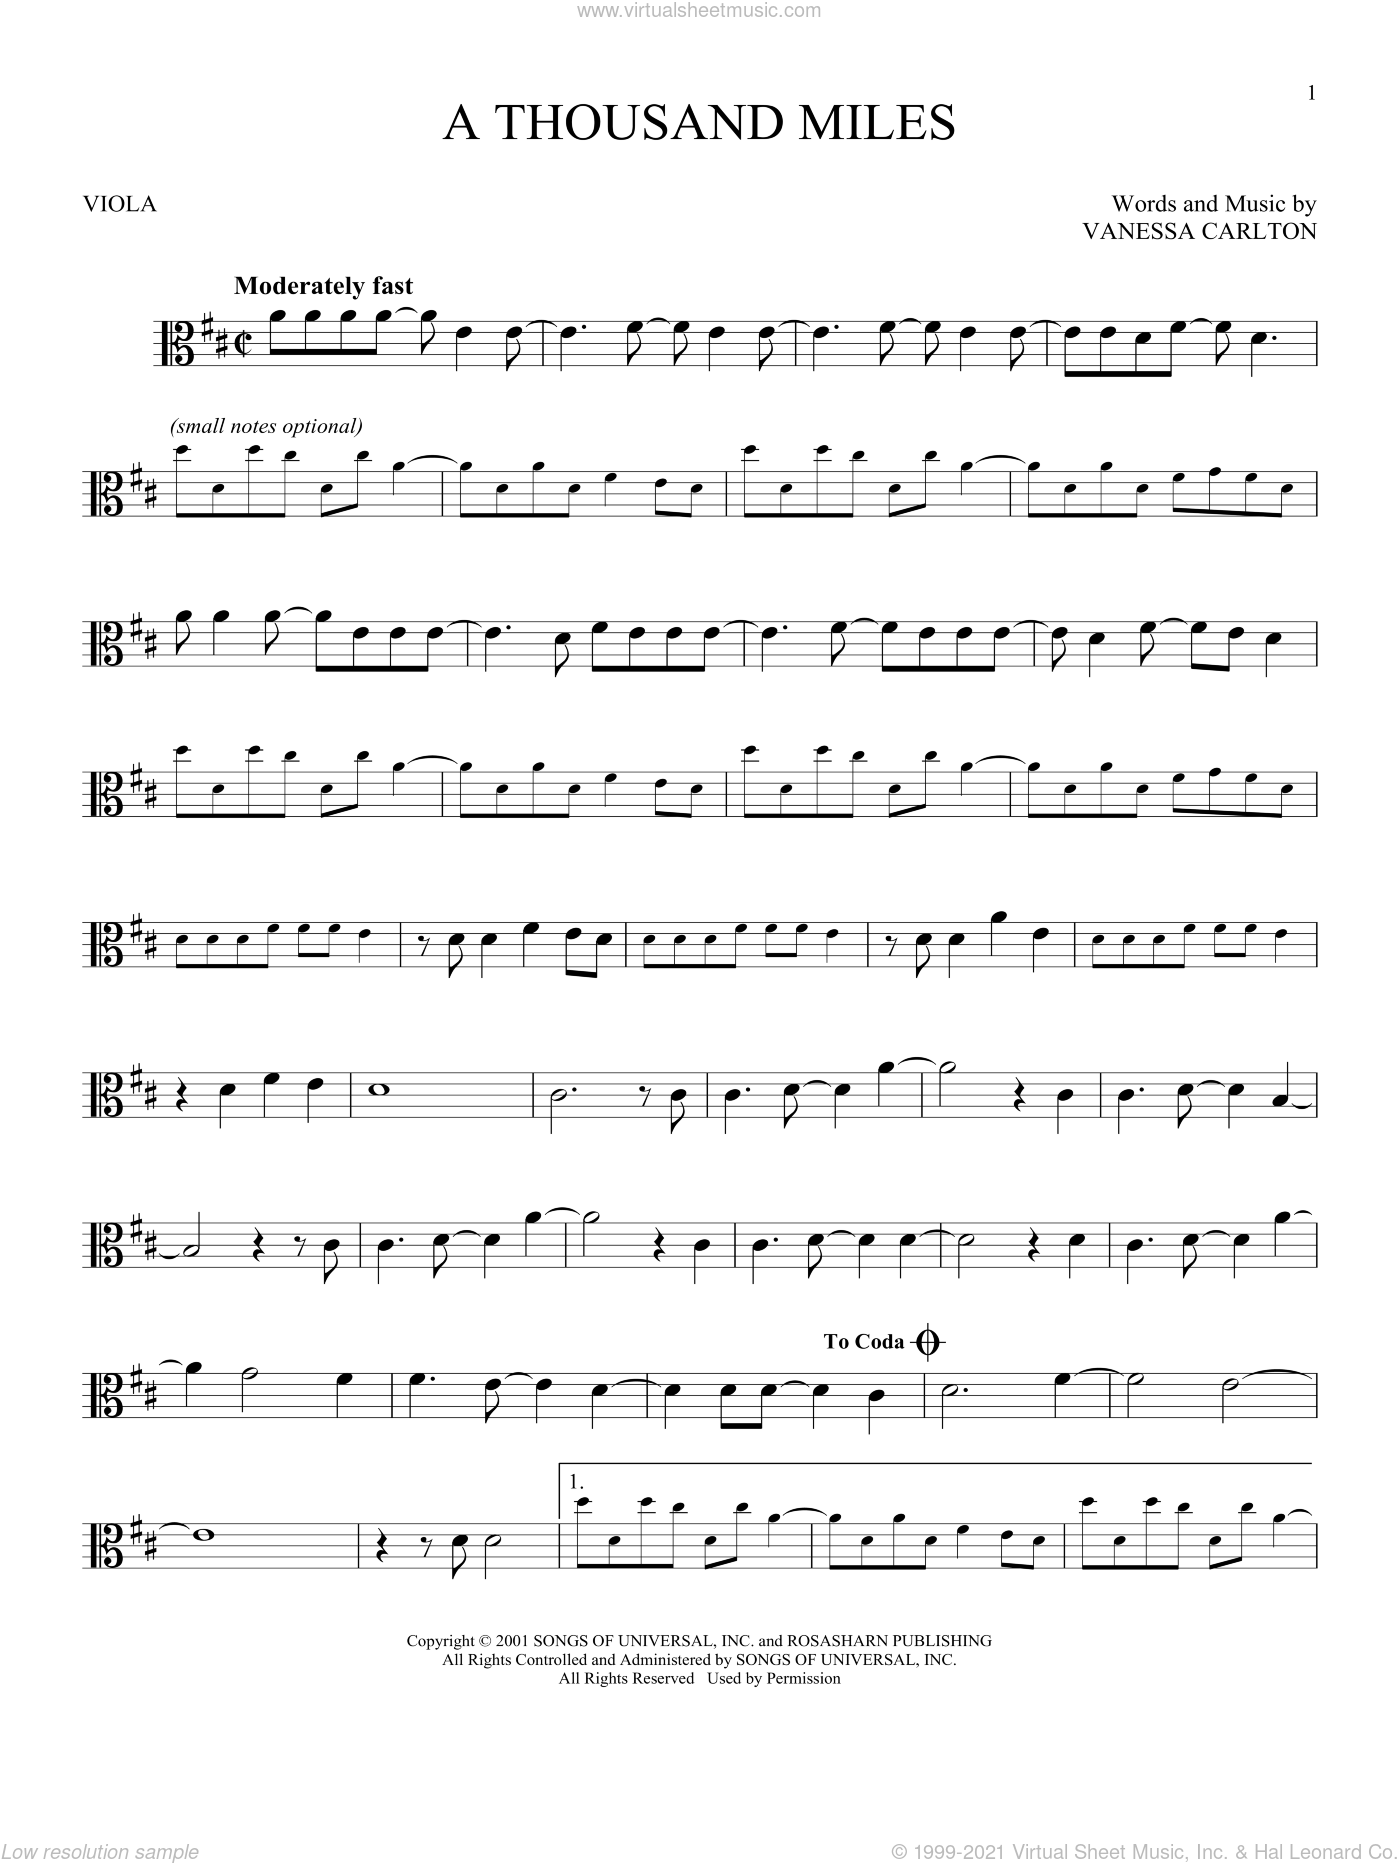 A Thousand Miles sheet music for viola solo by Vanessa Carlton, intermediate skill level